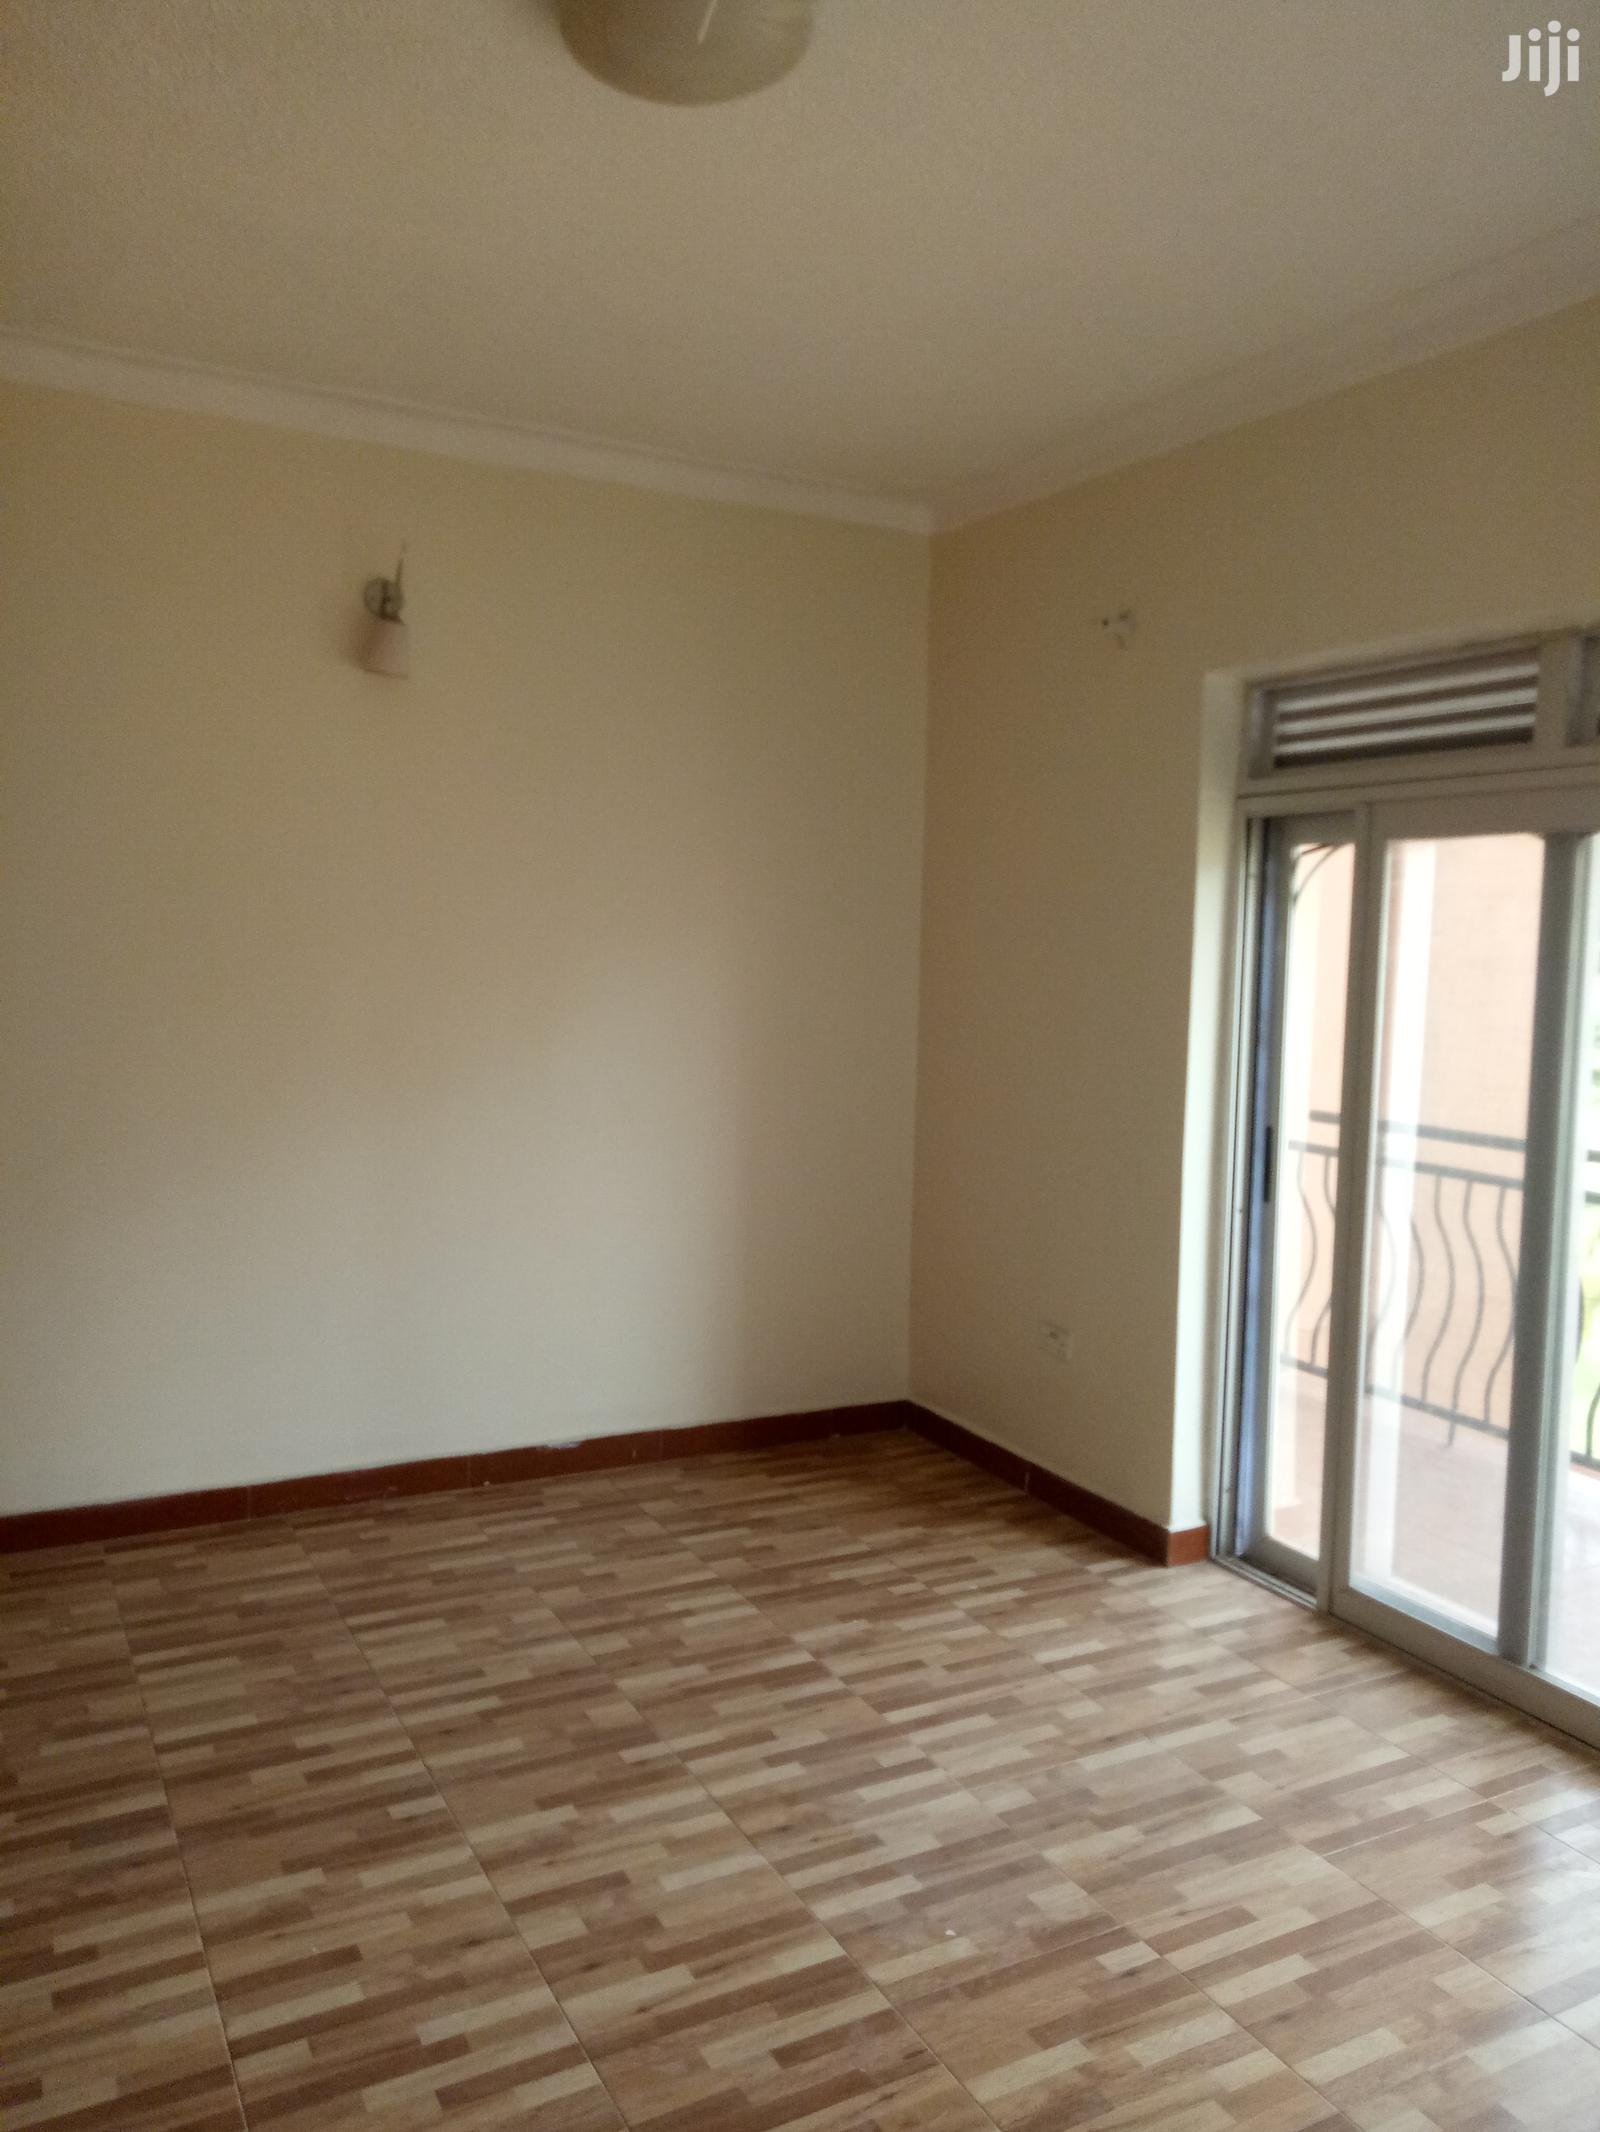 Kireka Kamuli Road Single Room Self Contained | Houses & Apartments For Rent for sale in Kampala, Central Region, Uganda